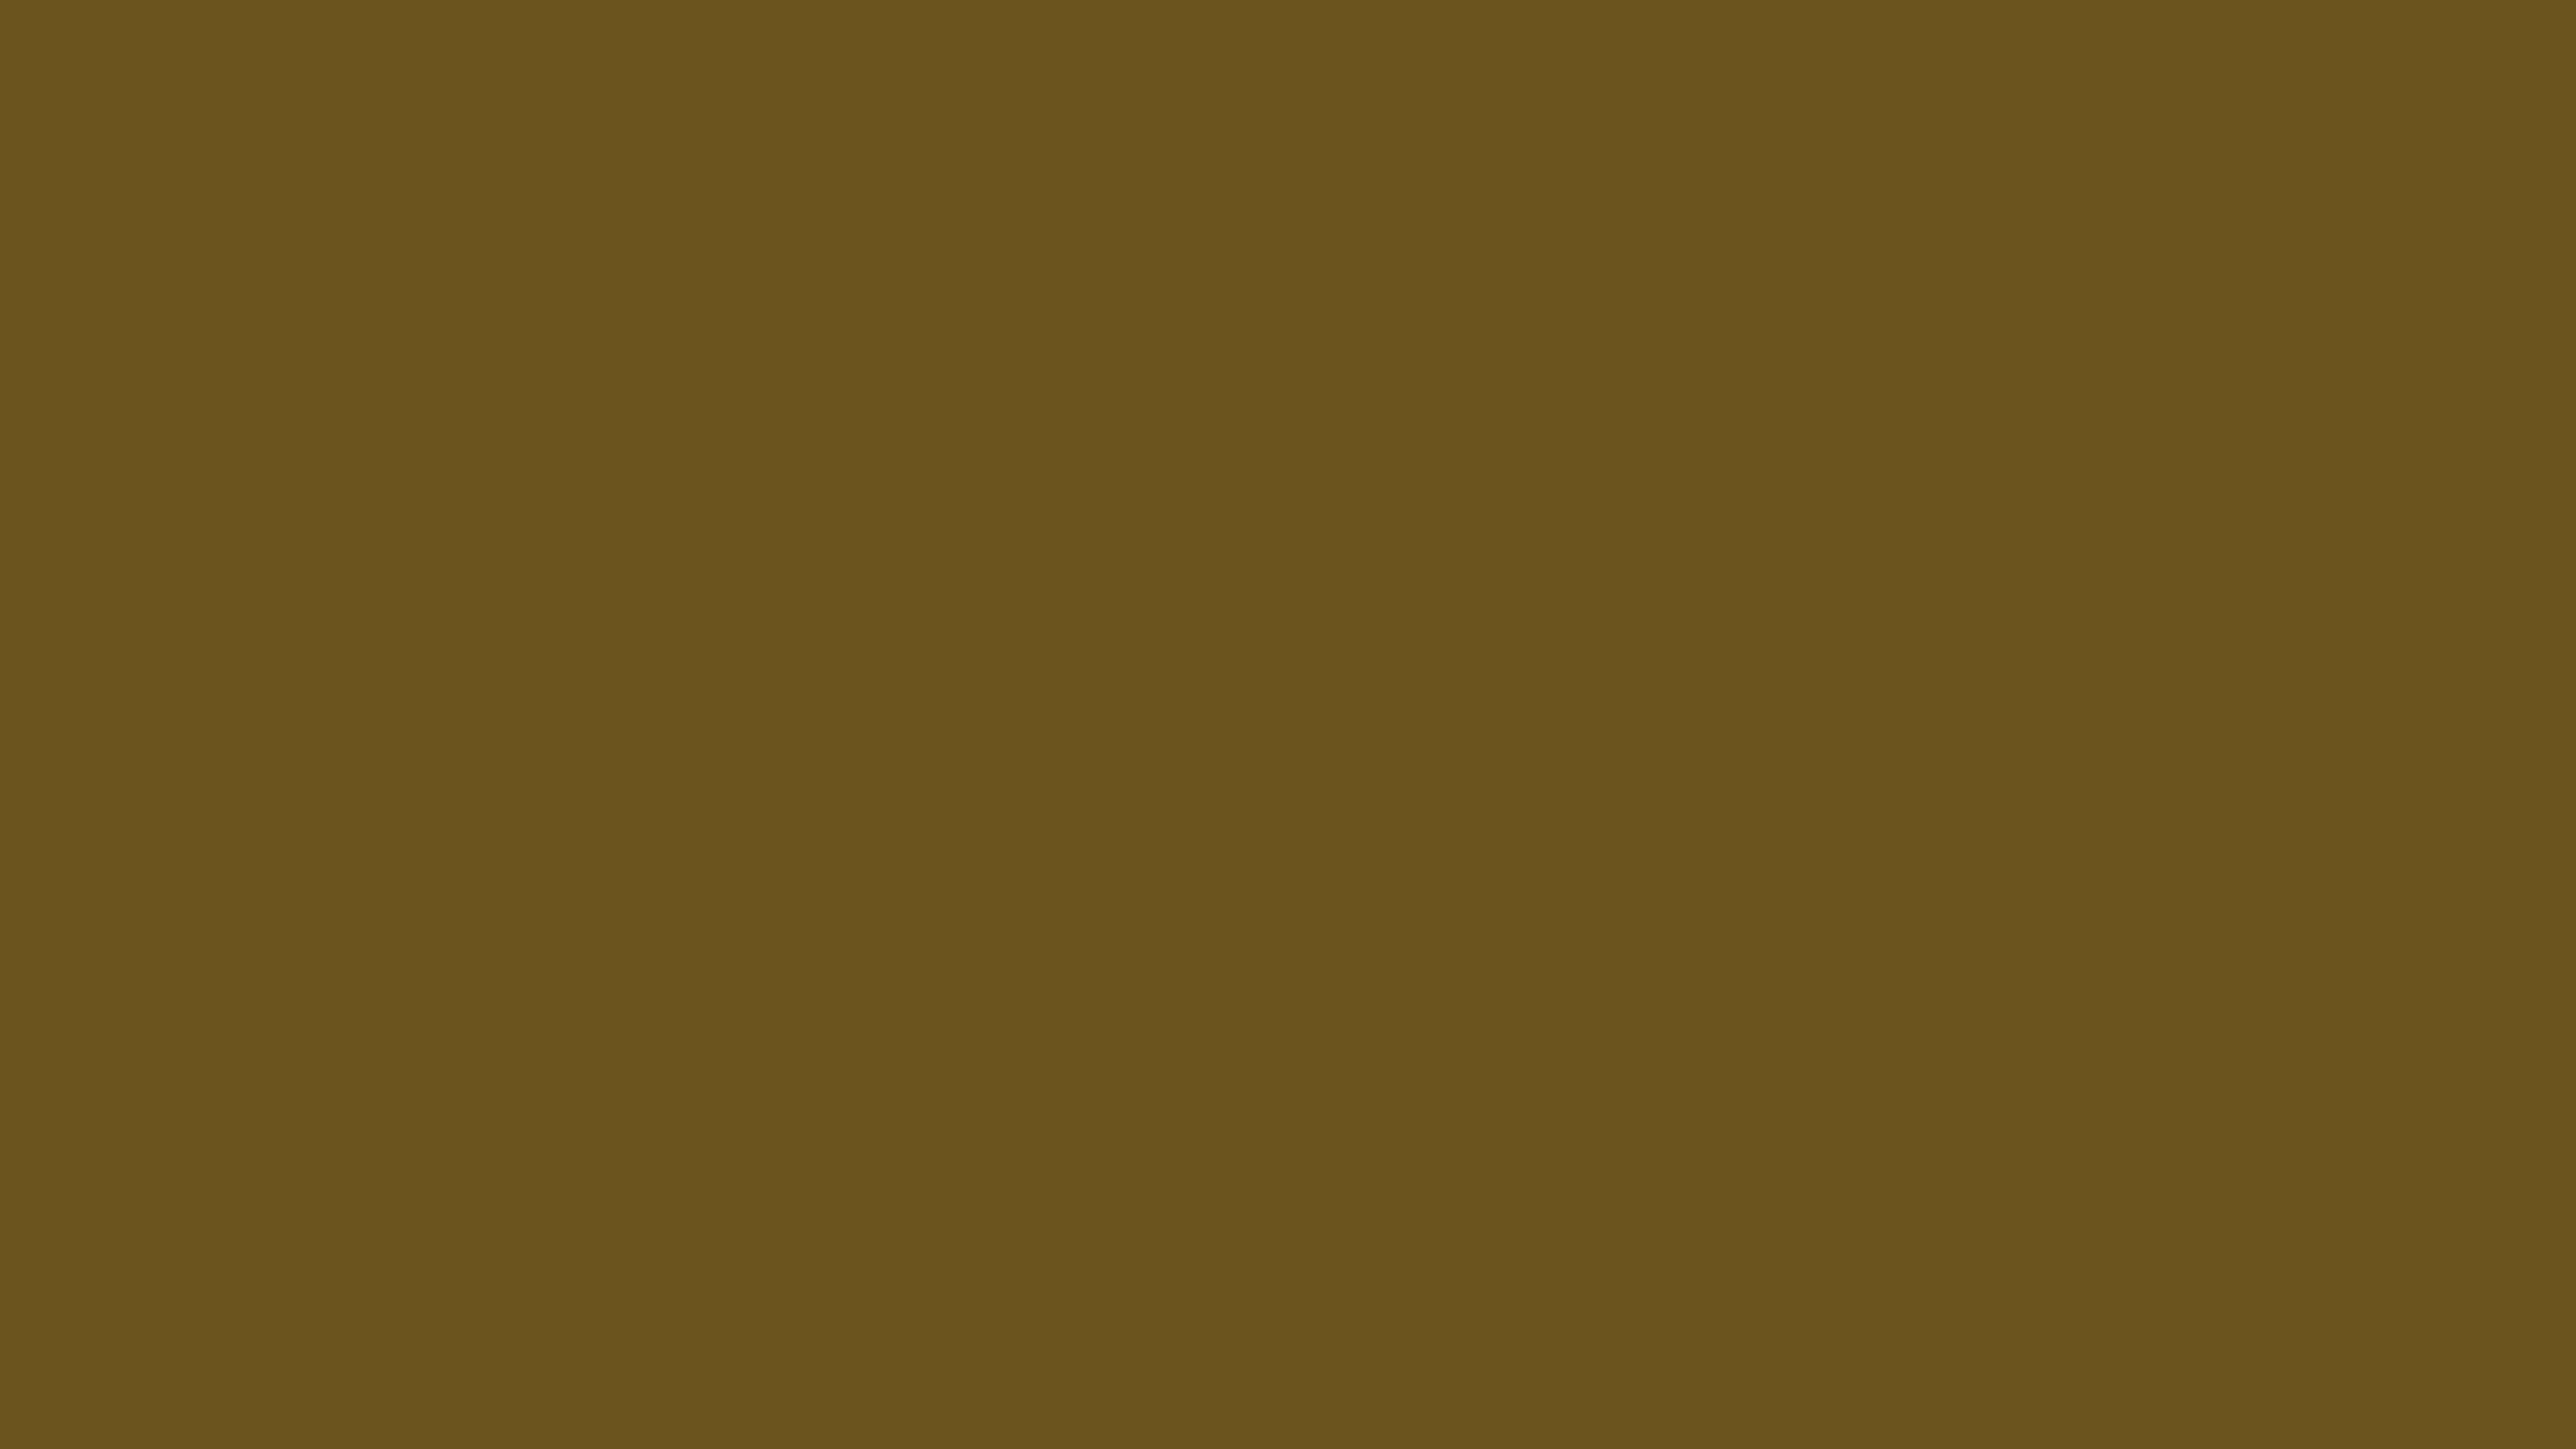 3840x2160 Field Drab Solid Color Background